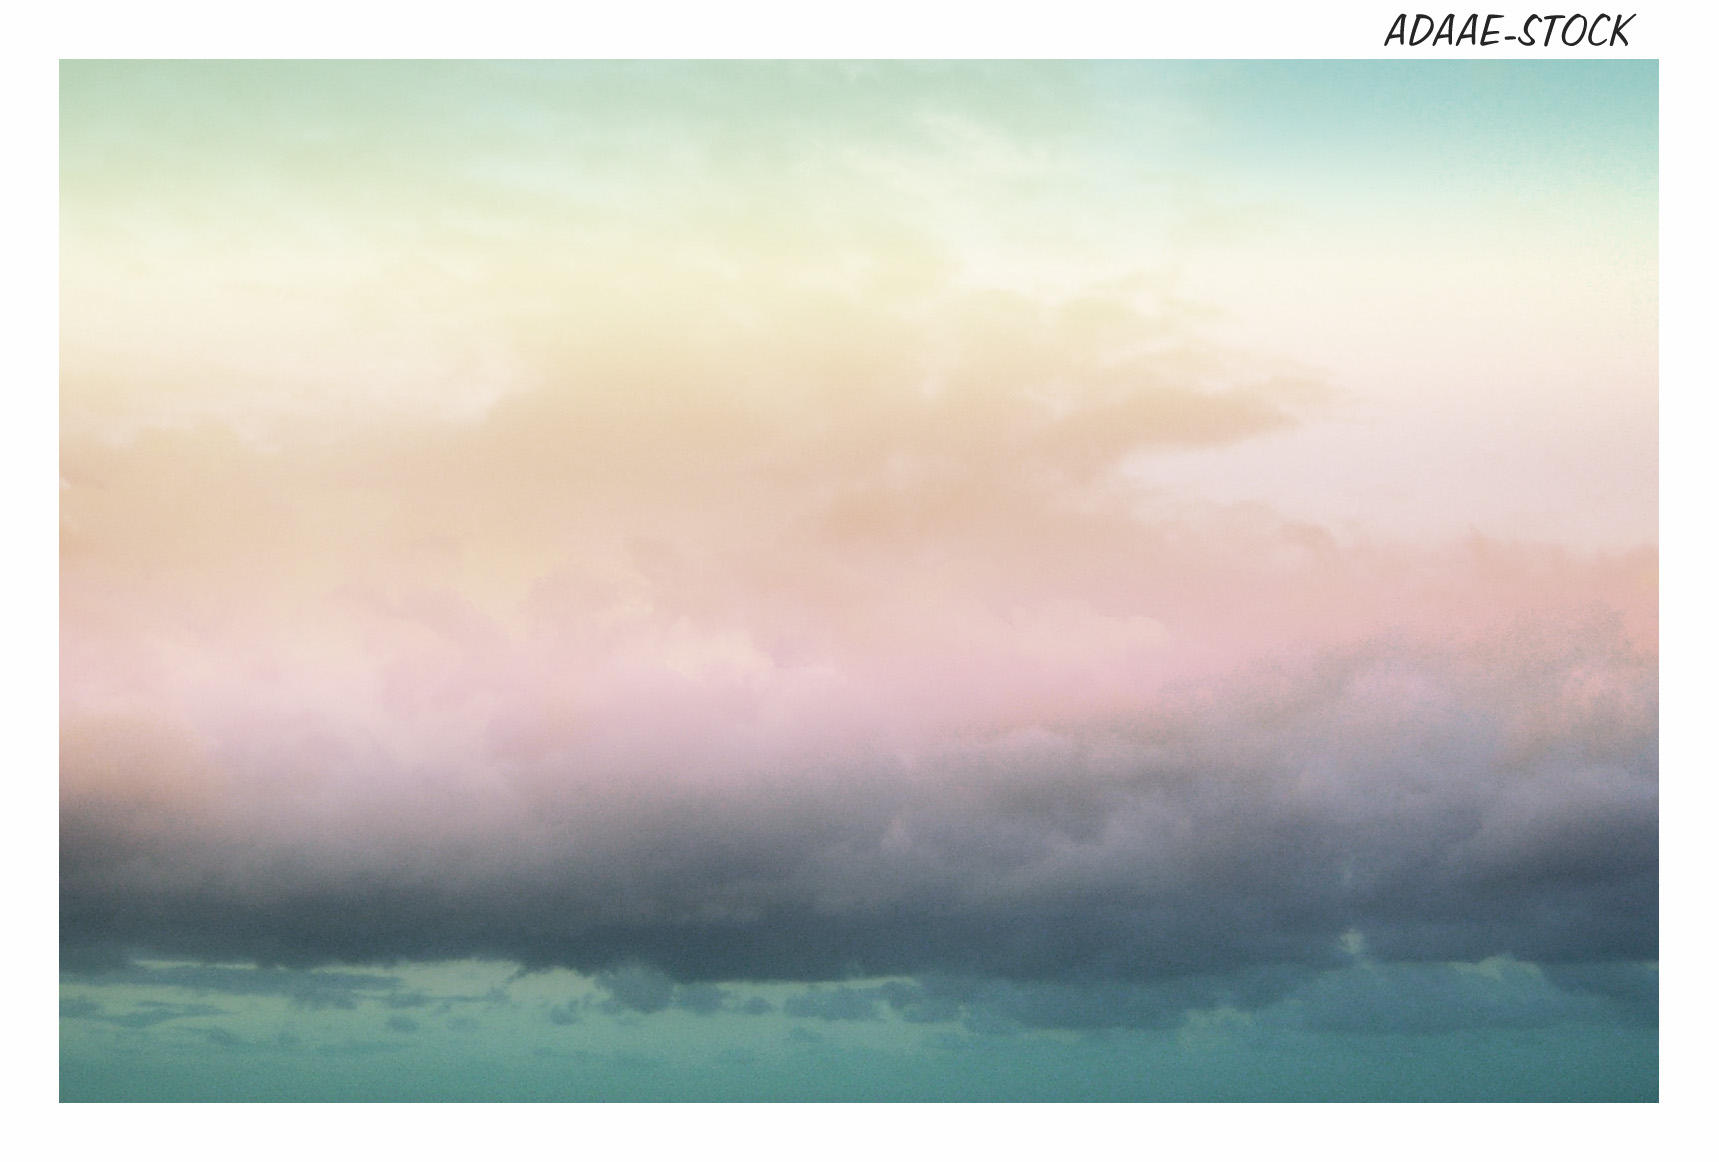 dreamy clouds 2 by Adaae-stock